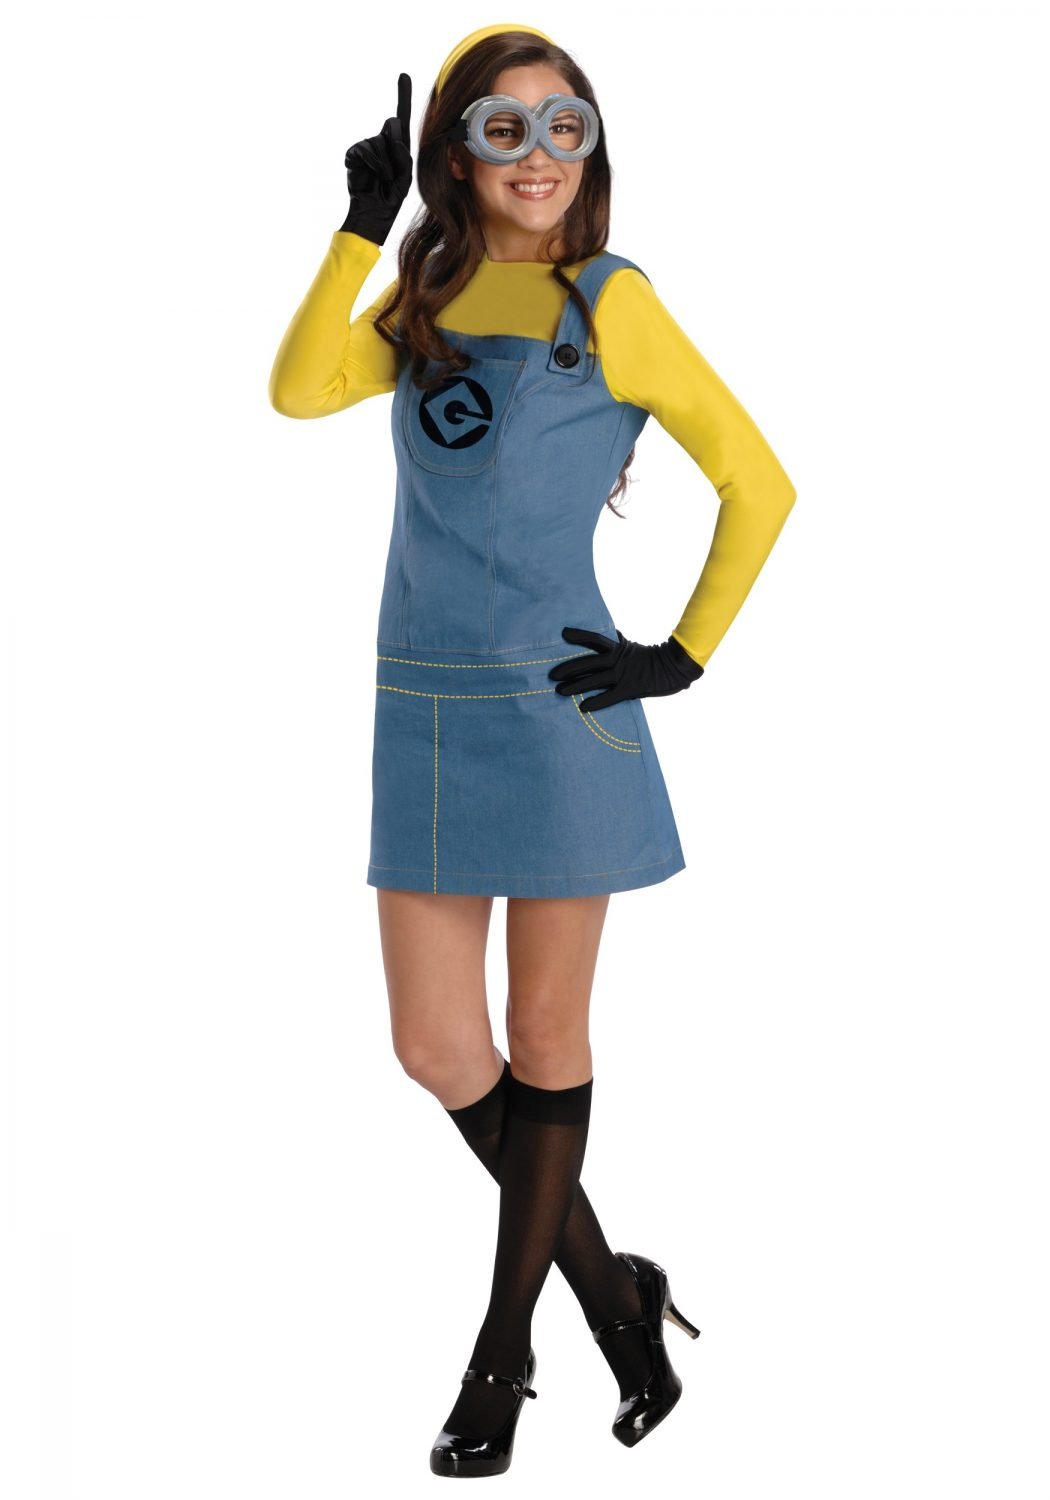 Minions2 Top 10 Teenagers Halloween Costumes Trends